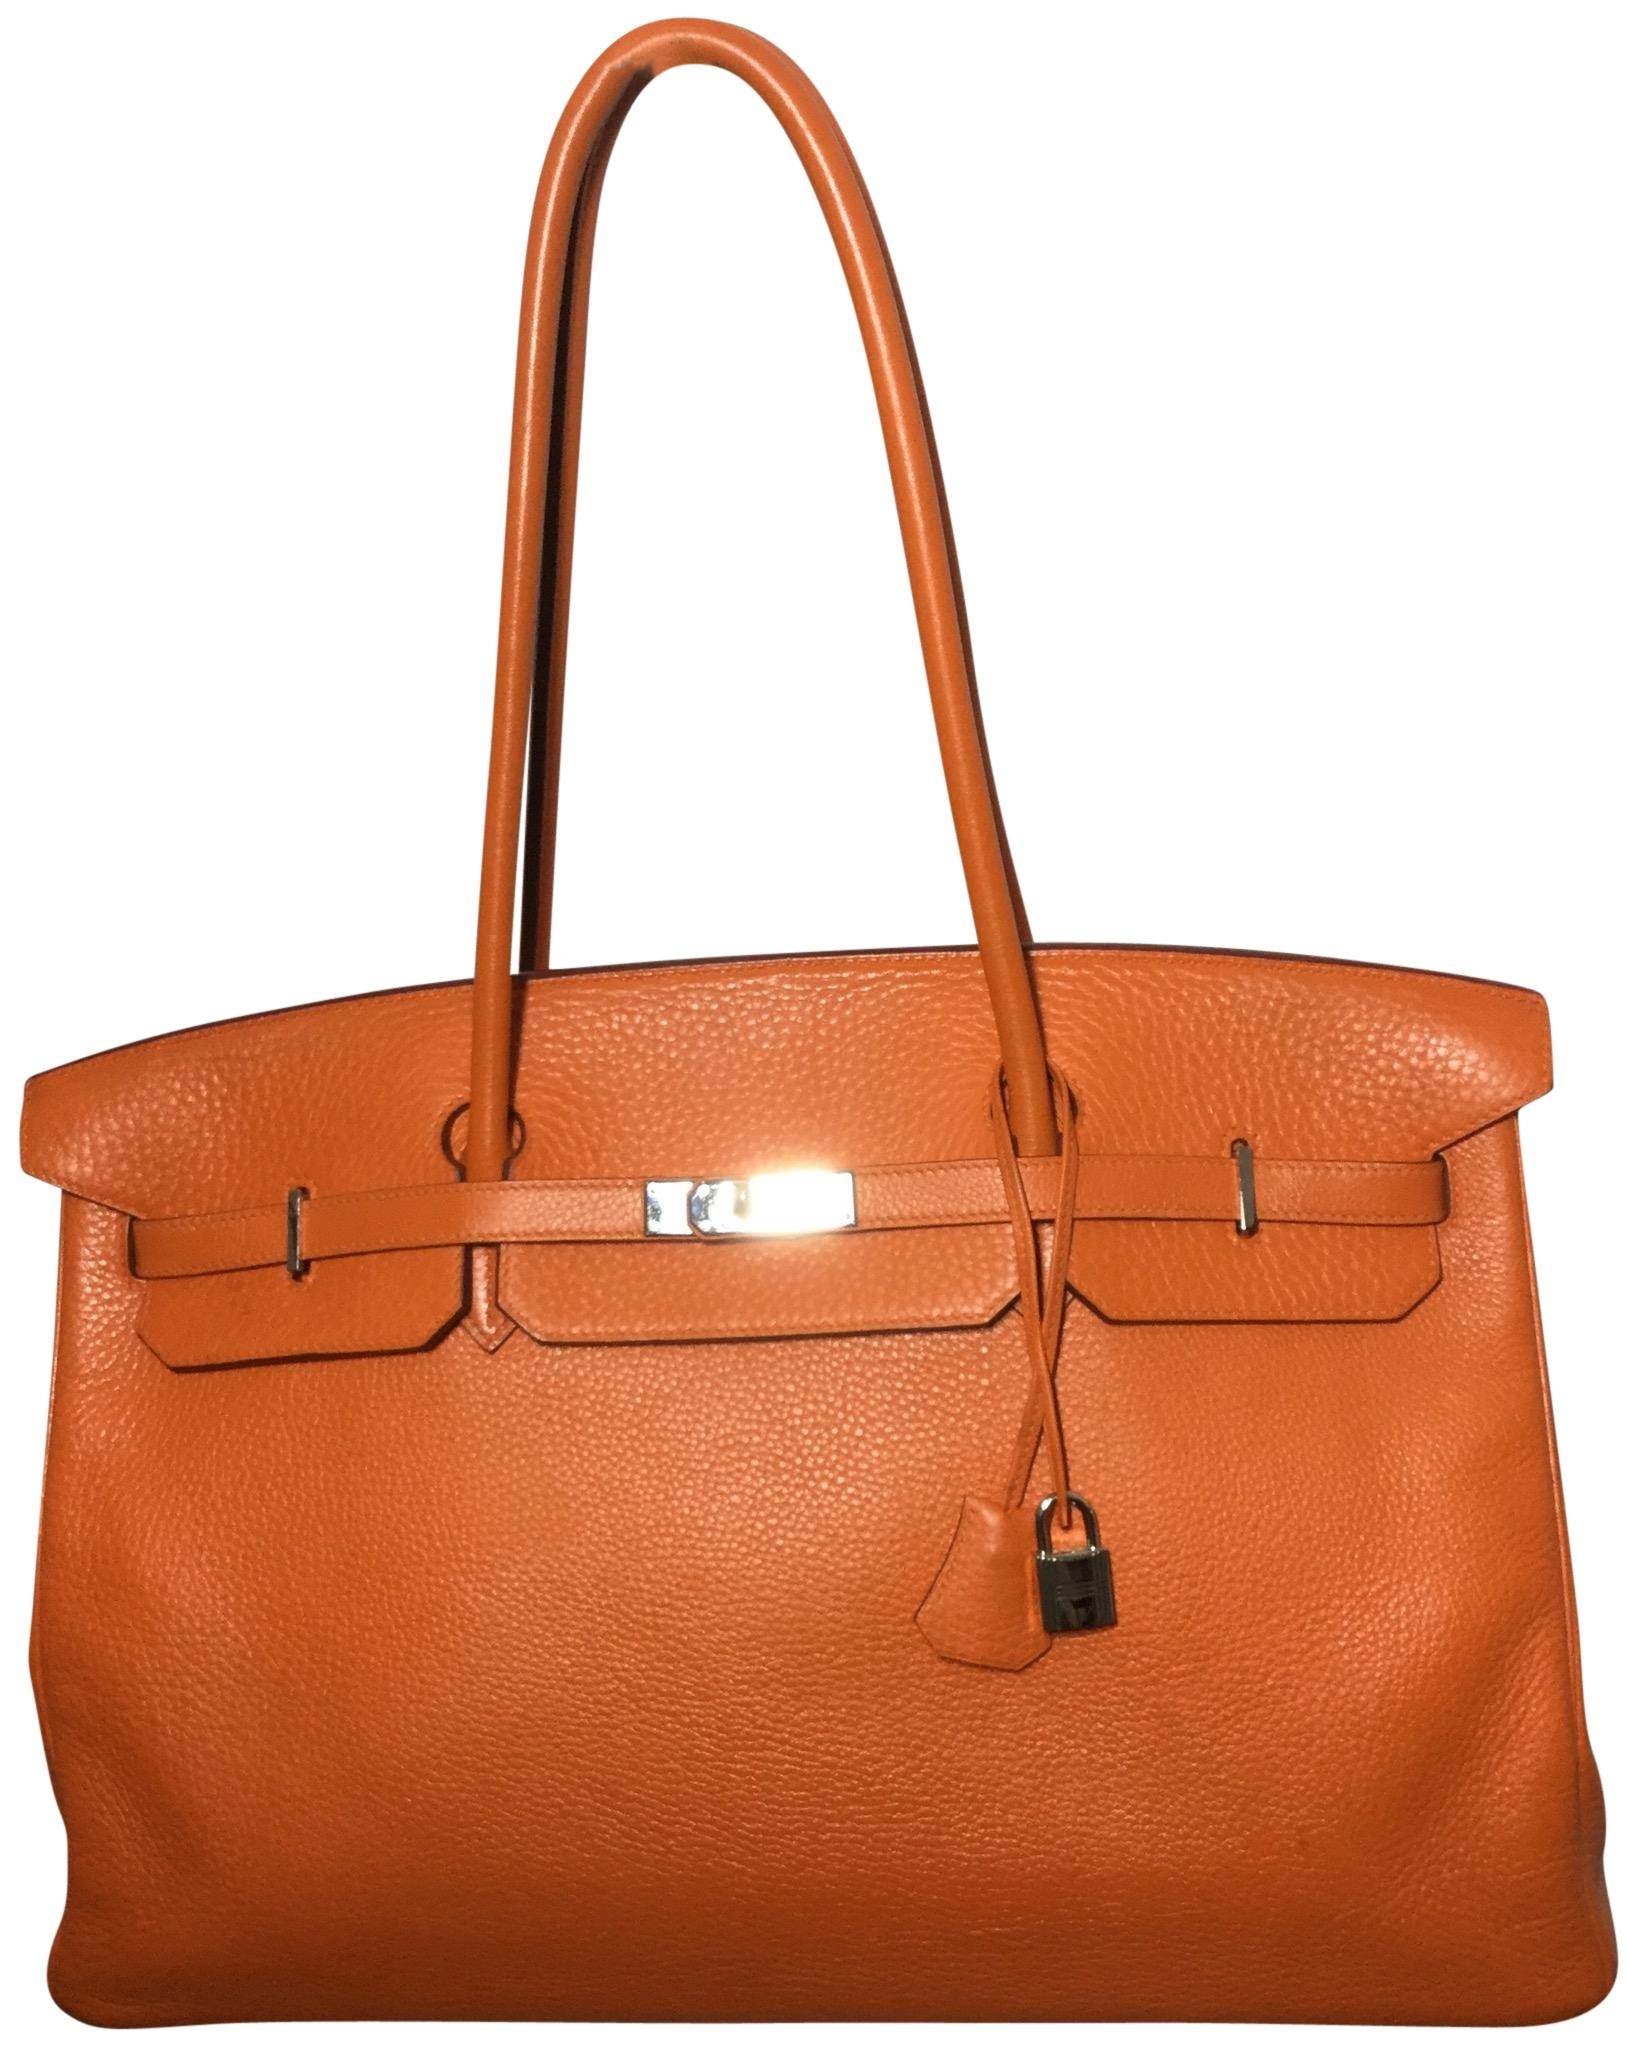 b9089b29df84 ... where to buy hermès birkin togo limited edition tote in orange 3fb9a  3b794